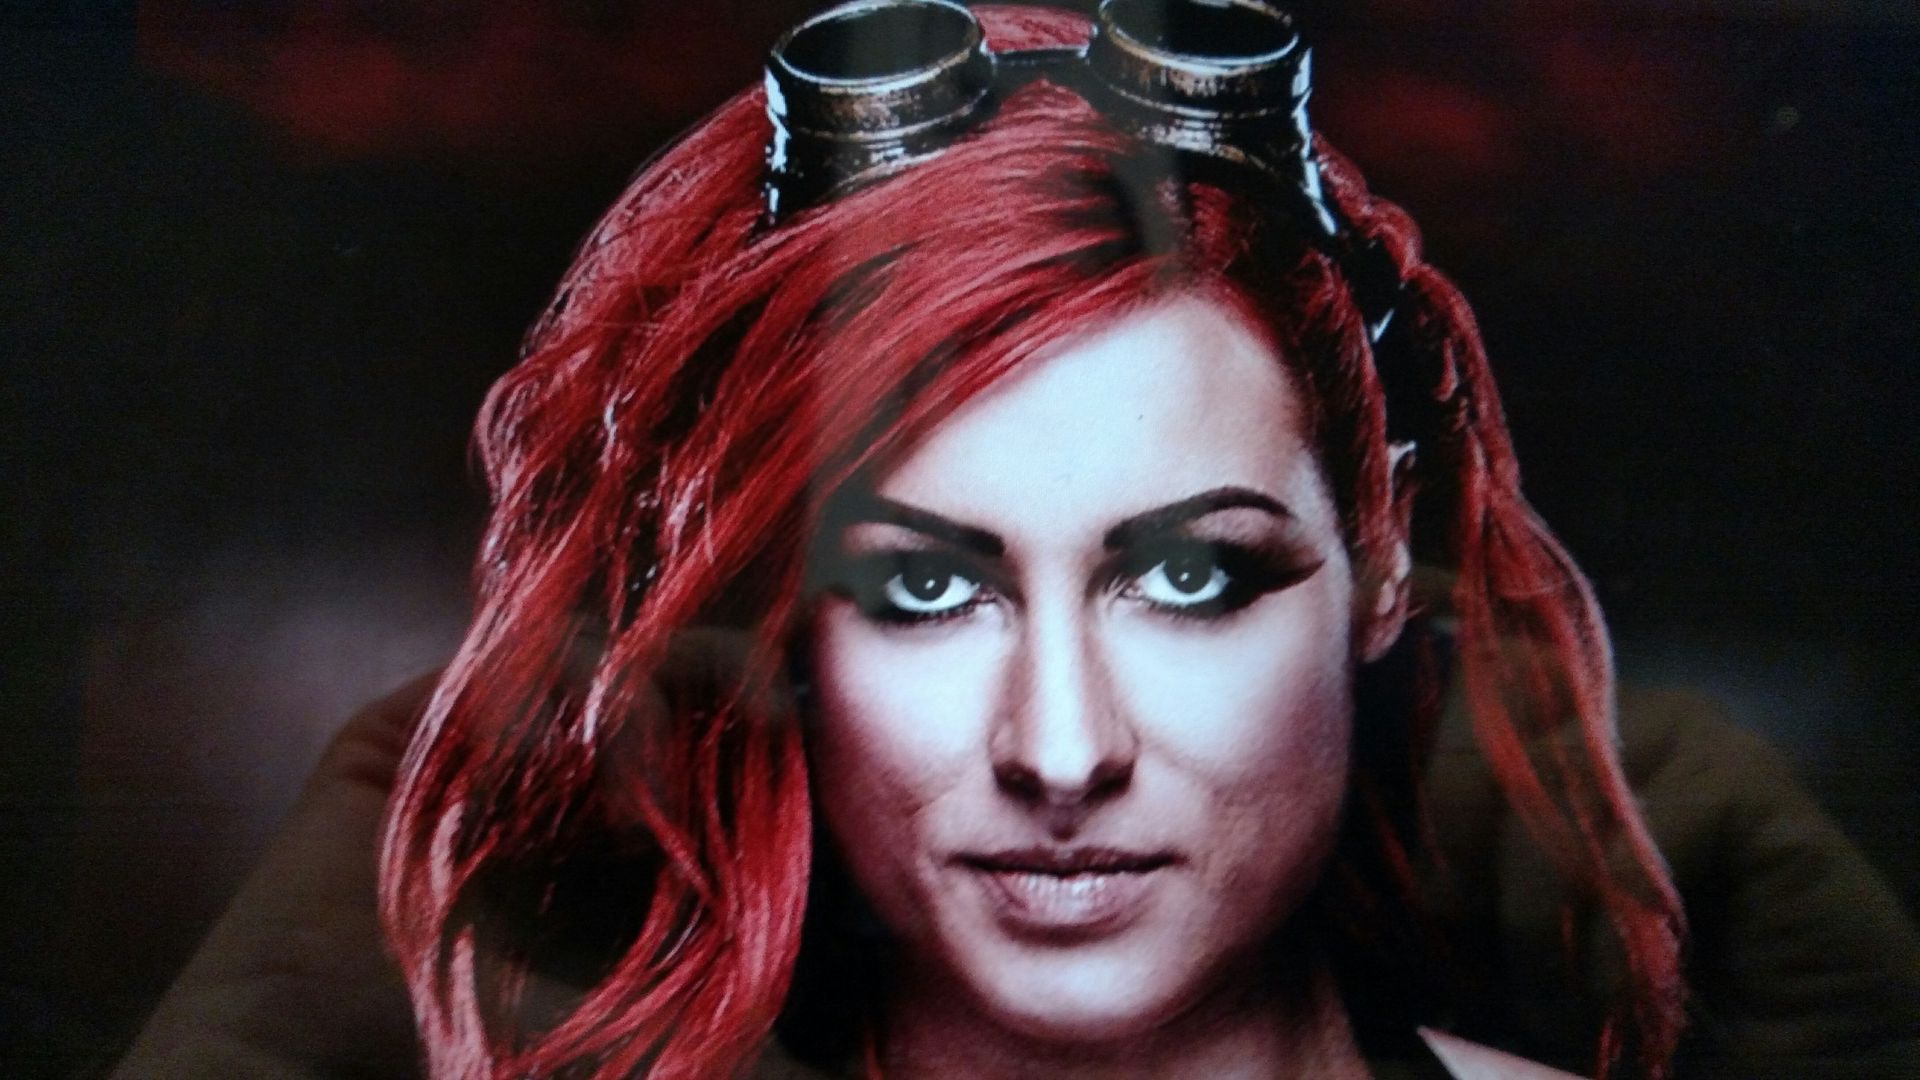 Wwe Smut Requests Are Closed - Becky Lynch Dean Ambrose - Wattpad-9430